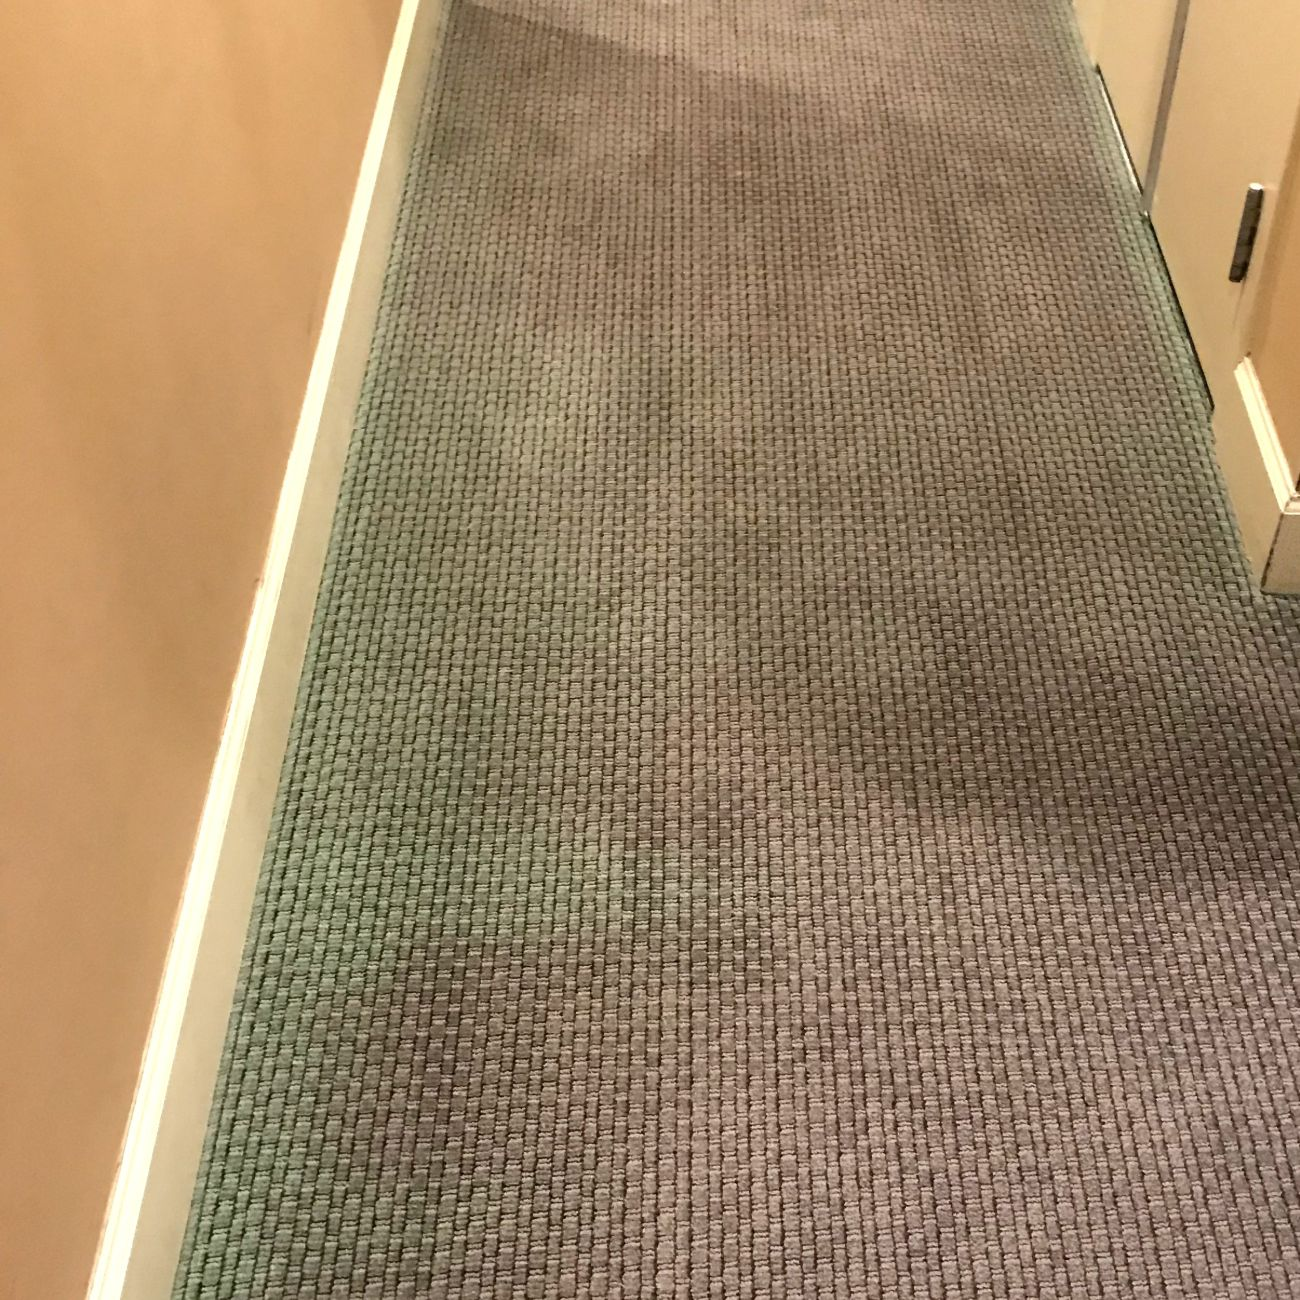 Help! Cleaning Company Bleached My Carpet! In Tampa, FL